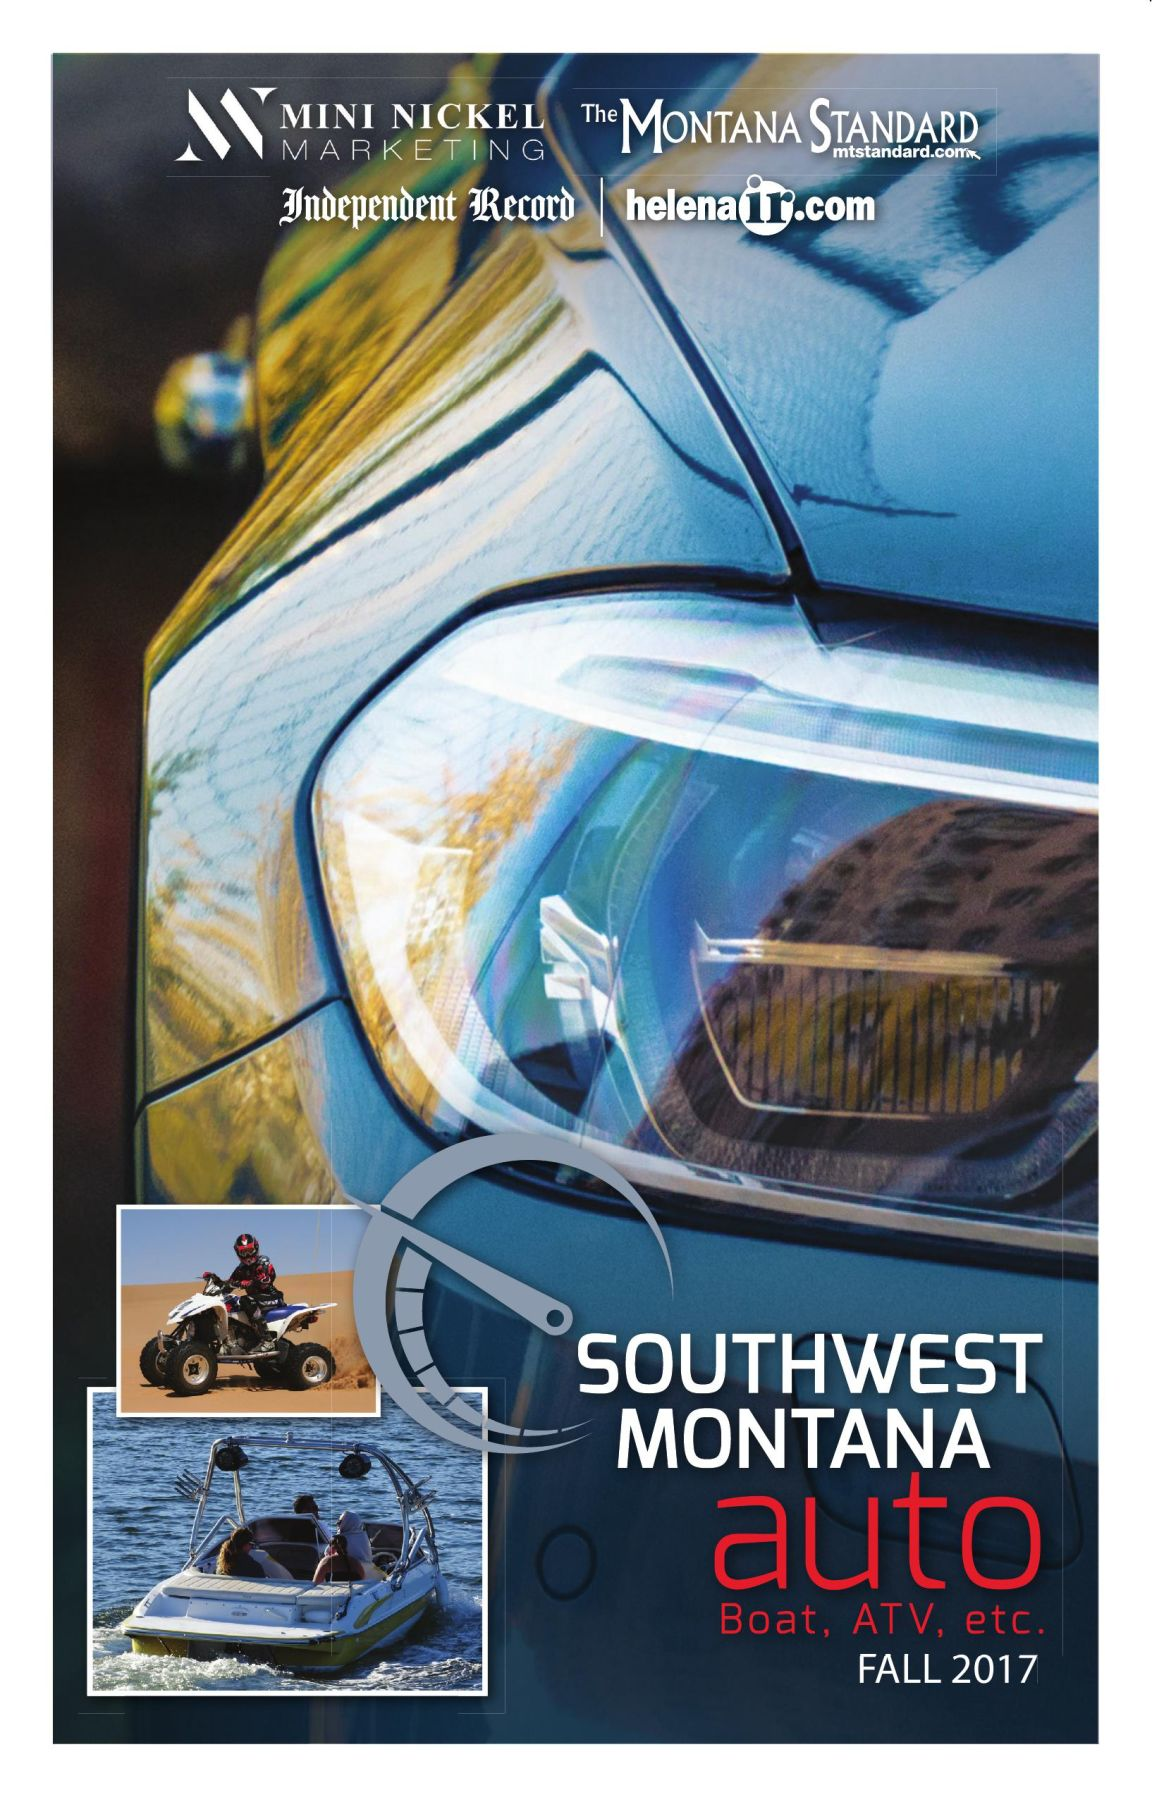 Southwest MT Auto Guide - Fall 2017